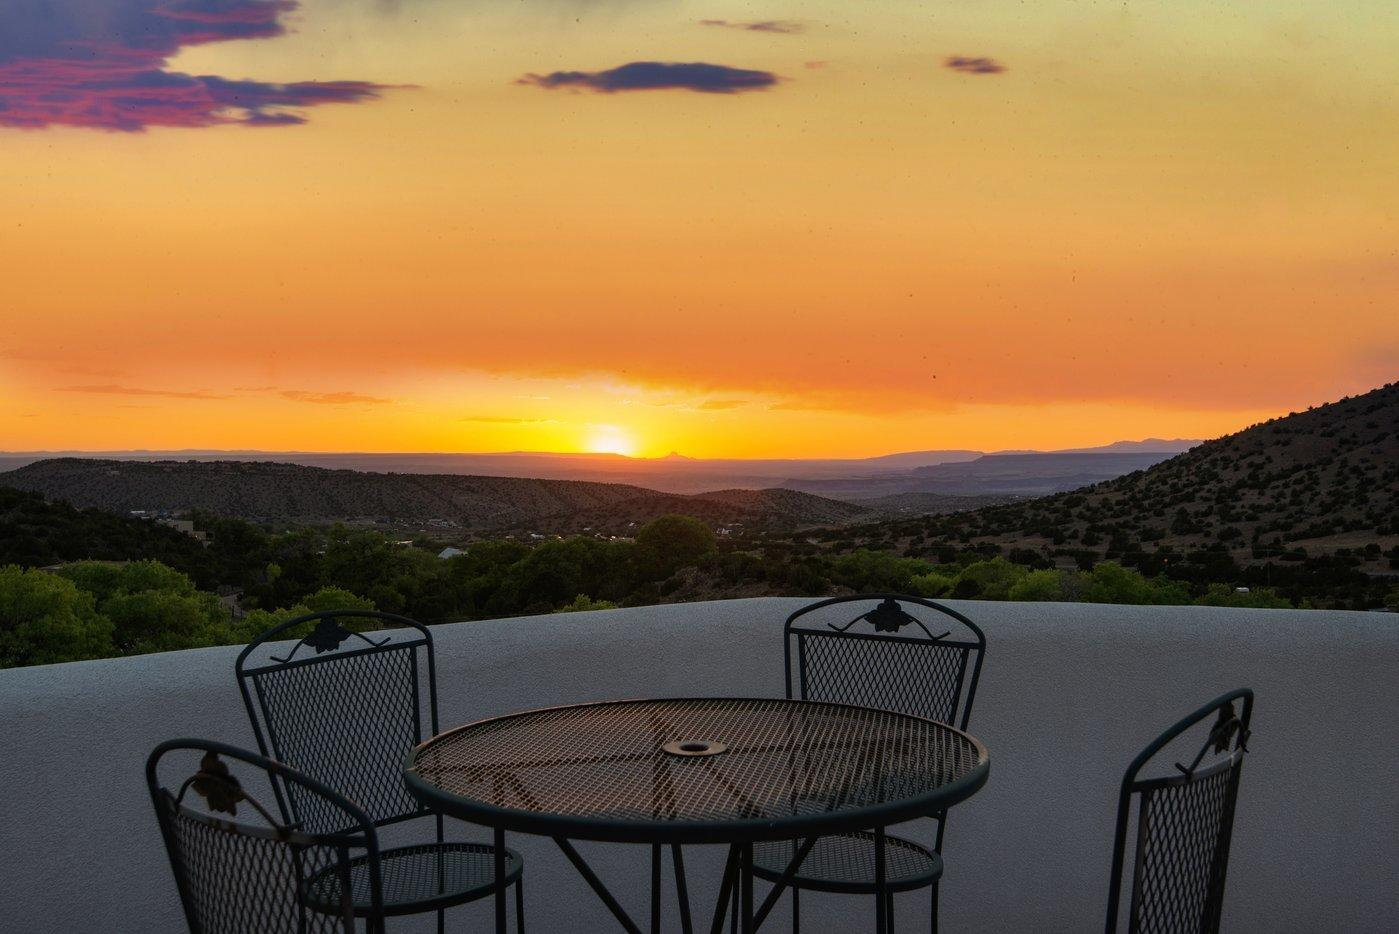 Nestled in the foothills of beautiful Placitas, this stunning custom-built home offers breathtaking, one-of-a-kind views of Cabezon peak, the Rio Grande River Valley, and the Sandias. A private and tranquil sanctuary that features rounded window walls and magnificent viewing decks to capture the spectacular views that surround this captivating property. Beginning with its gated courtyard entry and continuing throughout the home, the builder's masterful architectural details, including vigas and beams, are spectacular! This magnificent property features a formal living area with a kiva fireplace; a formal dining area with a coved beam ceiling and gorgeous hard wood floors; an open concept family room integrated with a spacious kitchen featuring granite countertops and spectacular